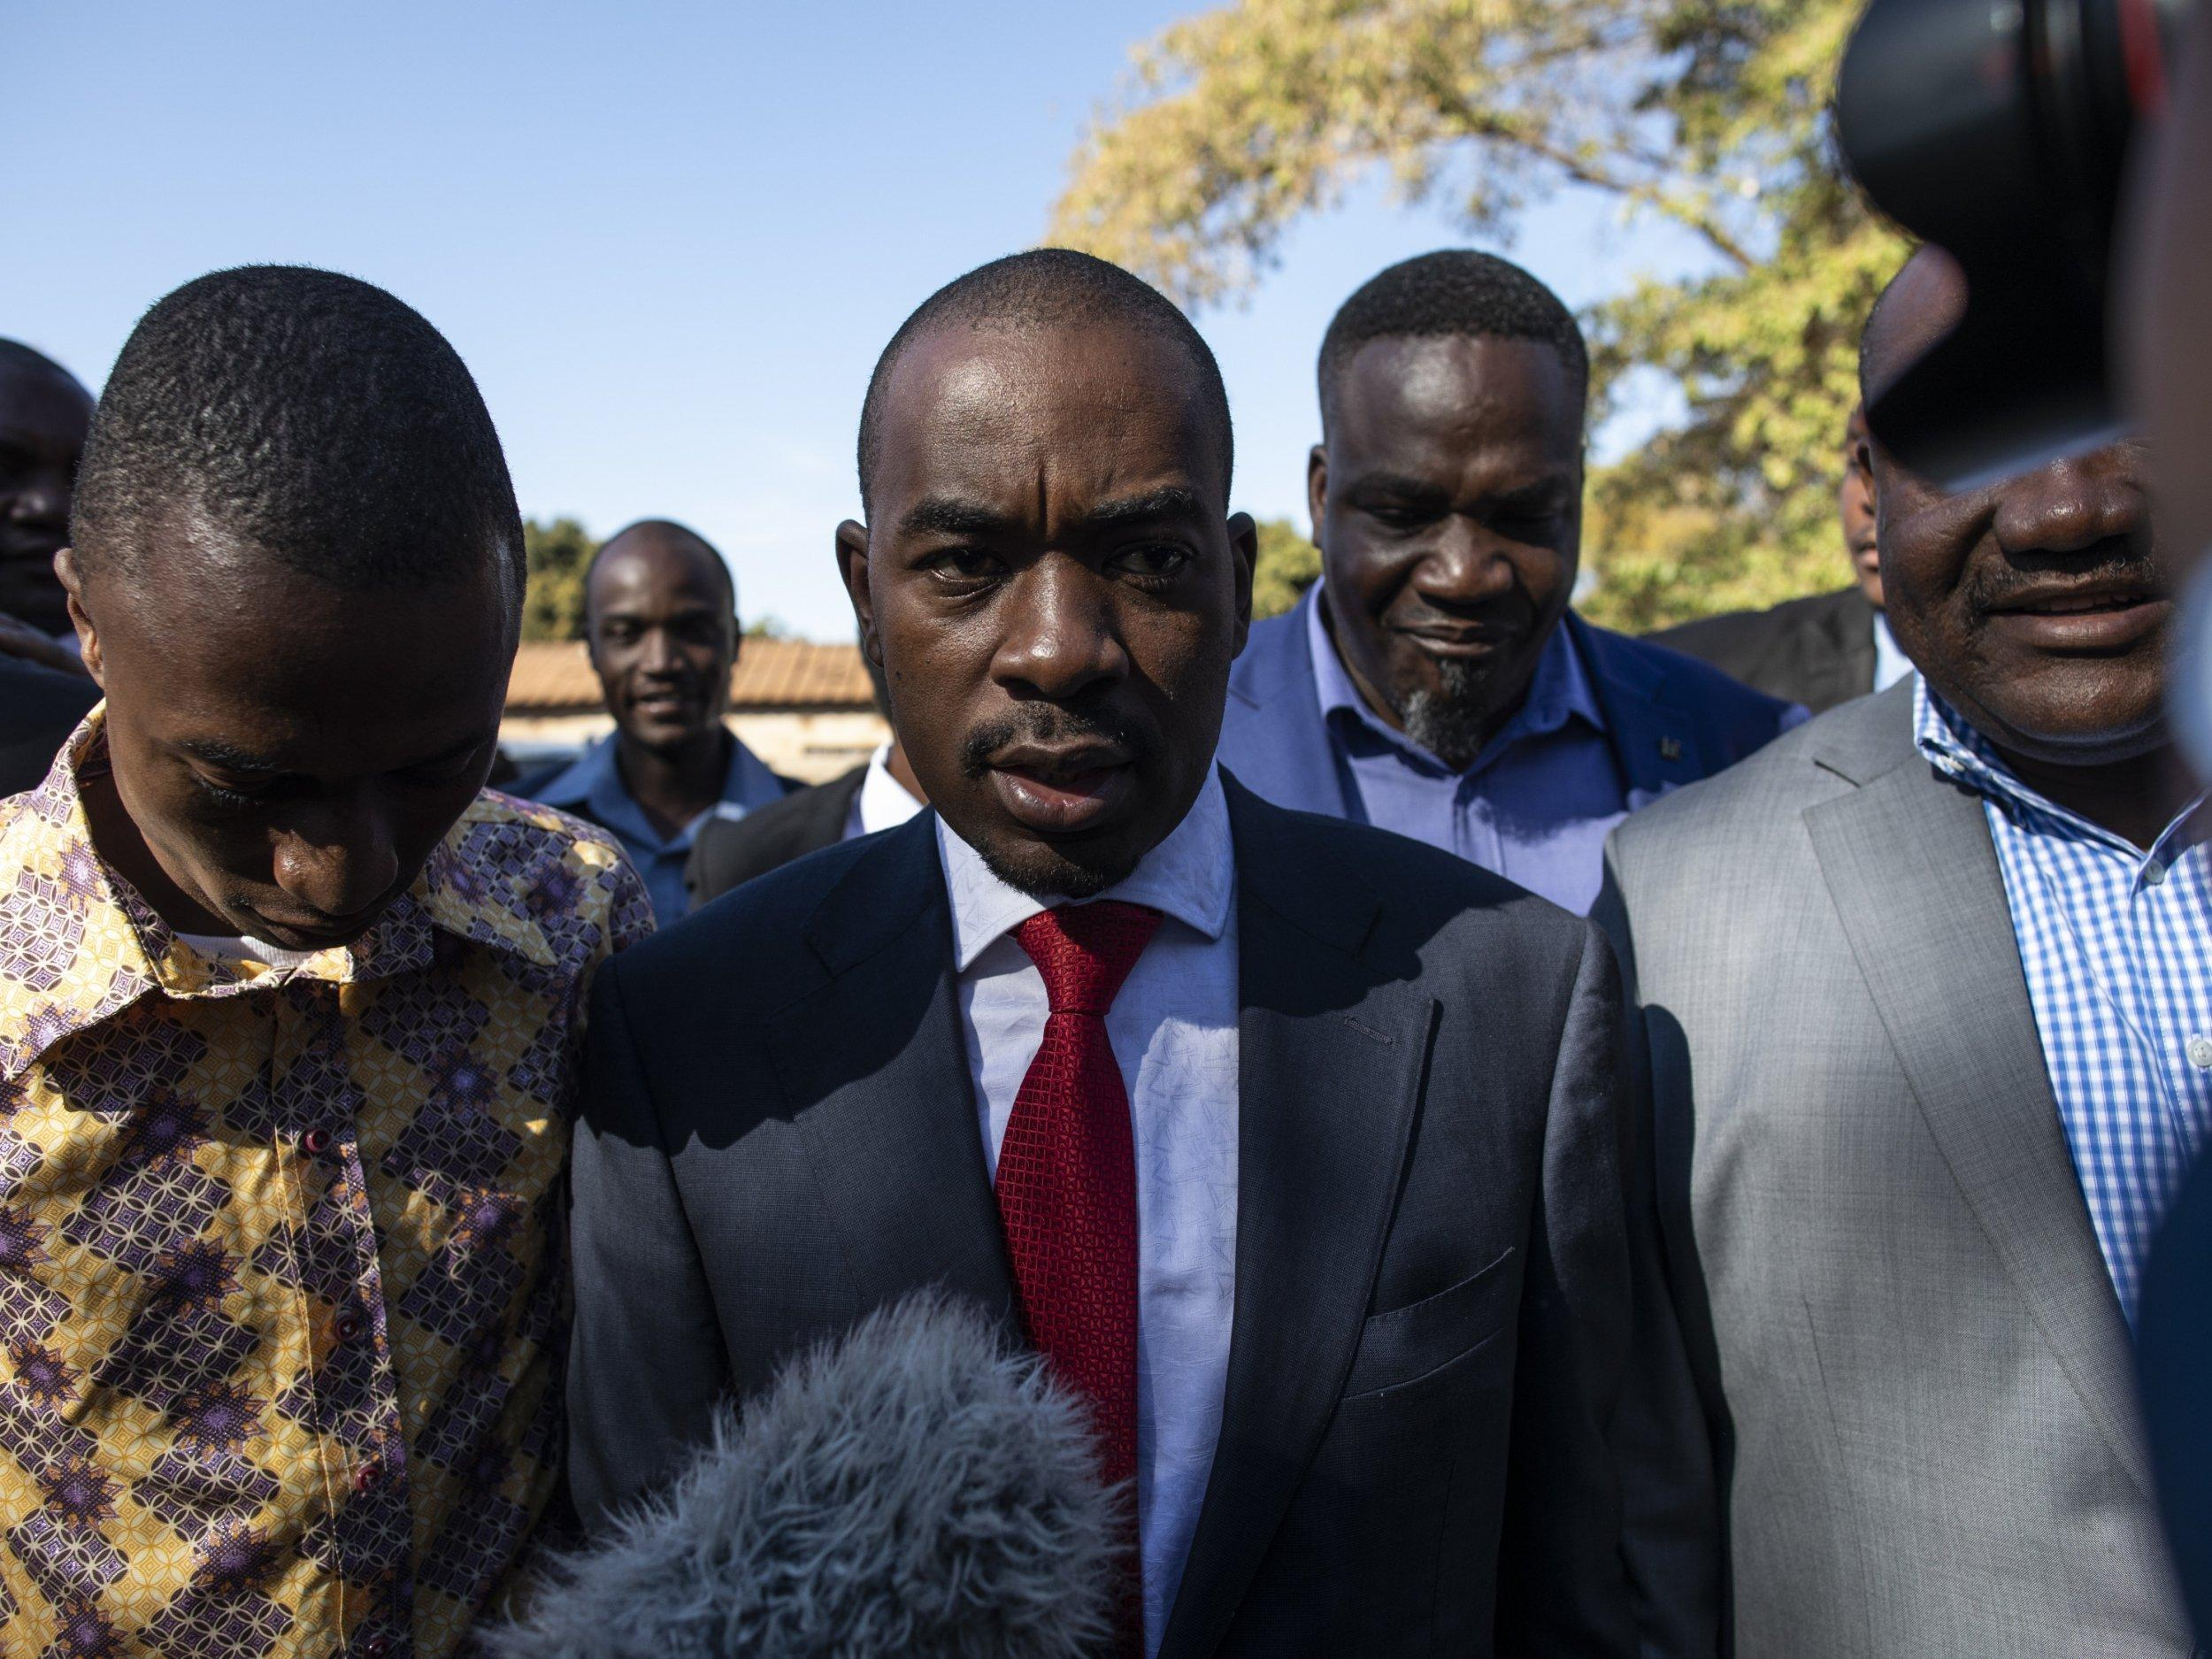 Zimbabwean elections: Who is Nelson Chamisa, the man who could end Zanu-PF's 40-year rule?